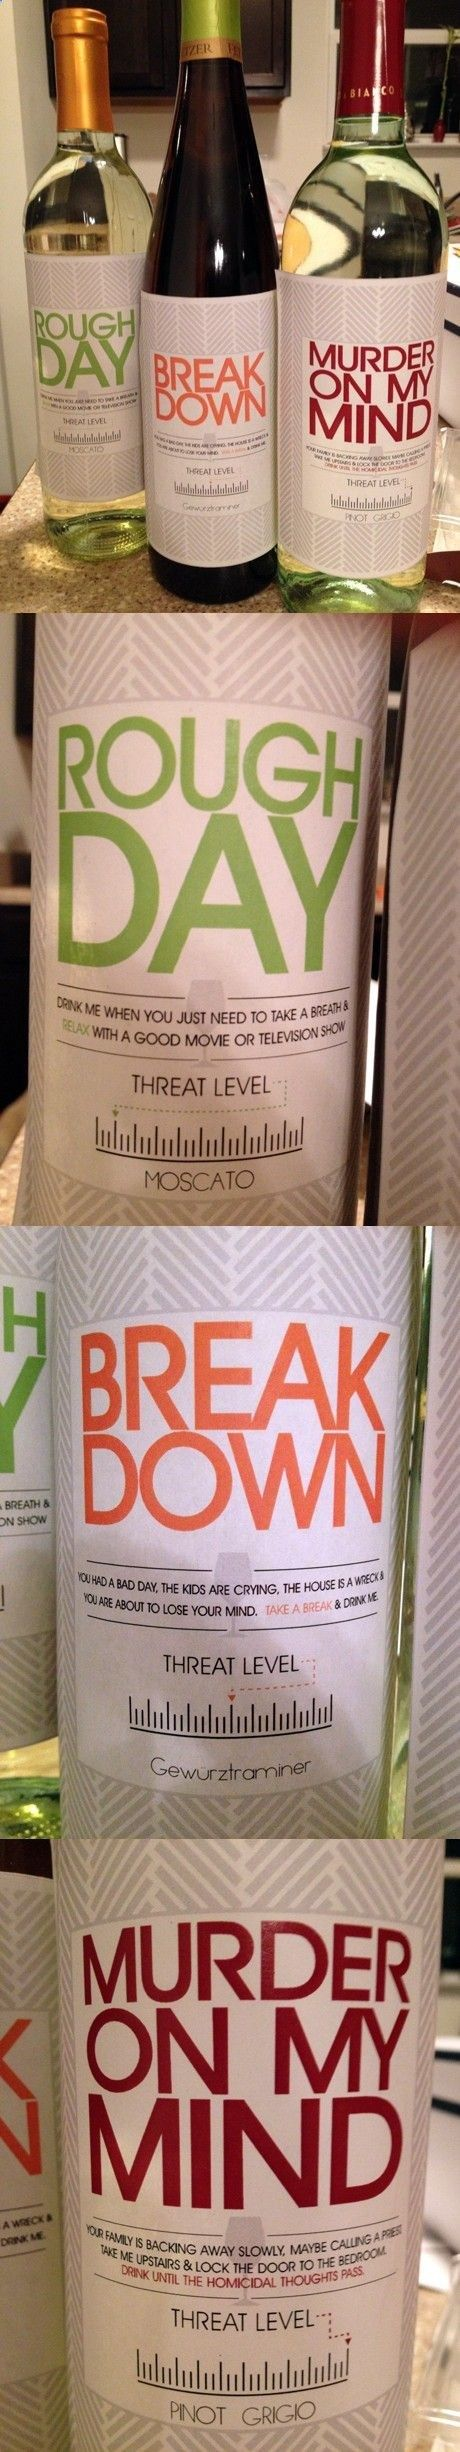 Bahahaha !! pinning this for my wine drinking girls at work... great gift idea  (@Wendy Marshall)